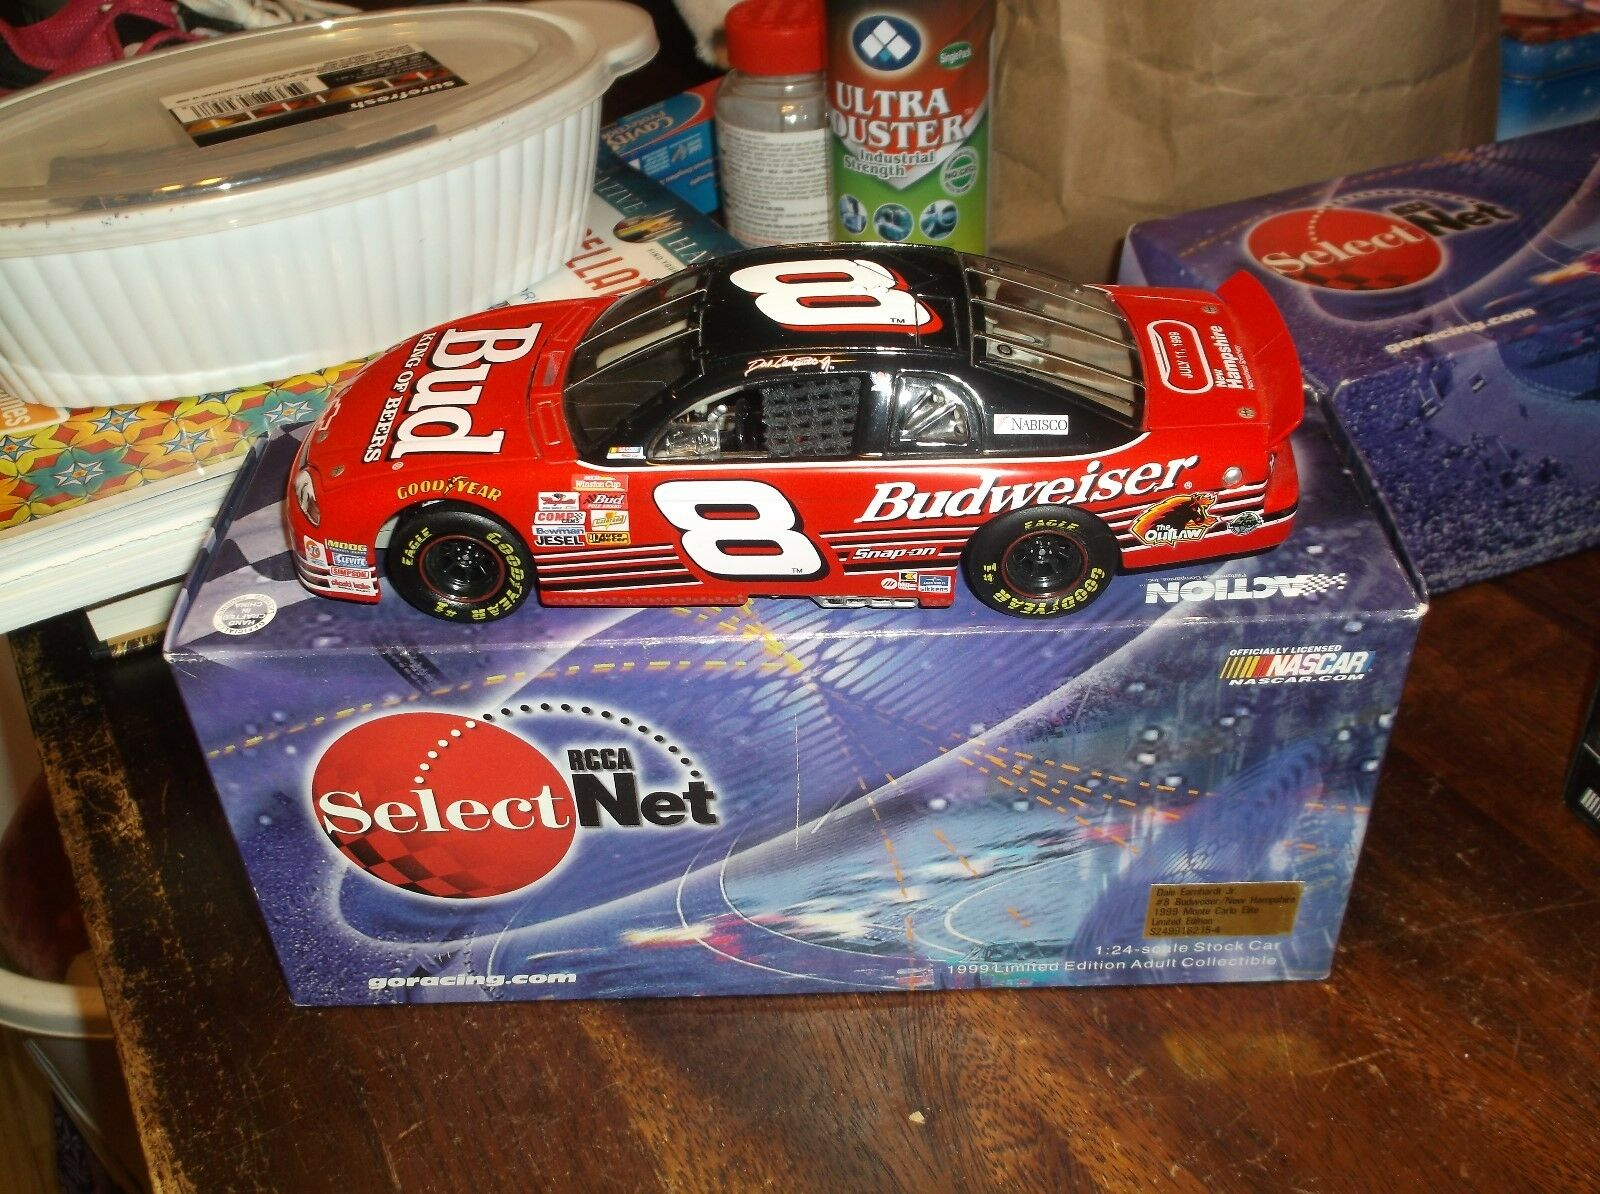 Rare 1999 Dale Earnhardt Jr 8 Budweiser 1 24TH Scale Diecast Racing Collectables Club of America Net Elite